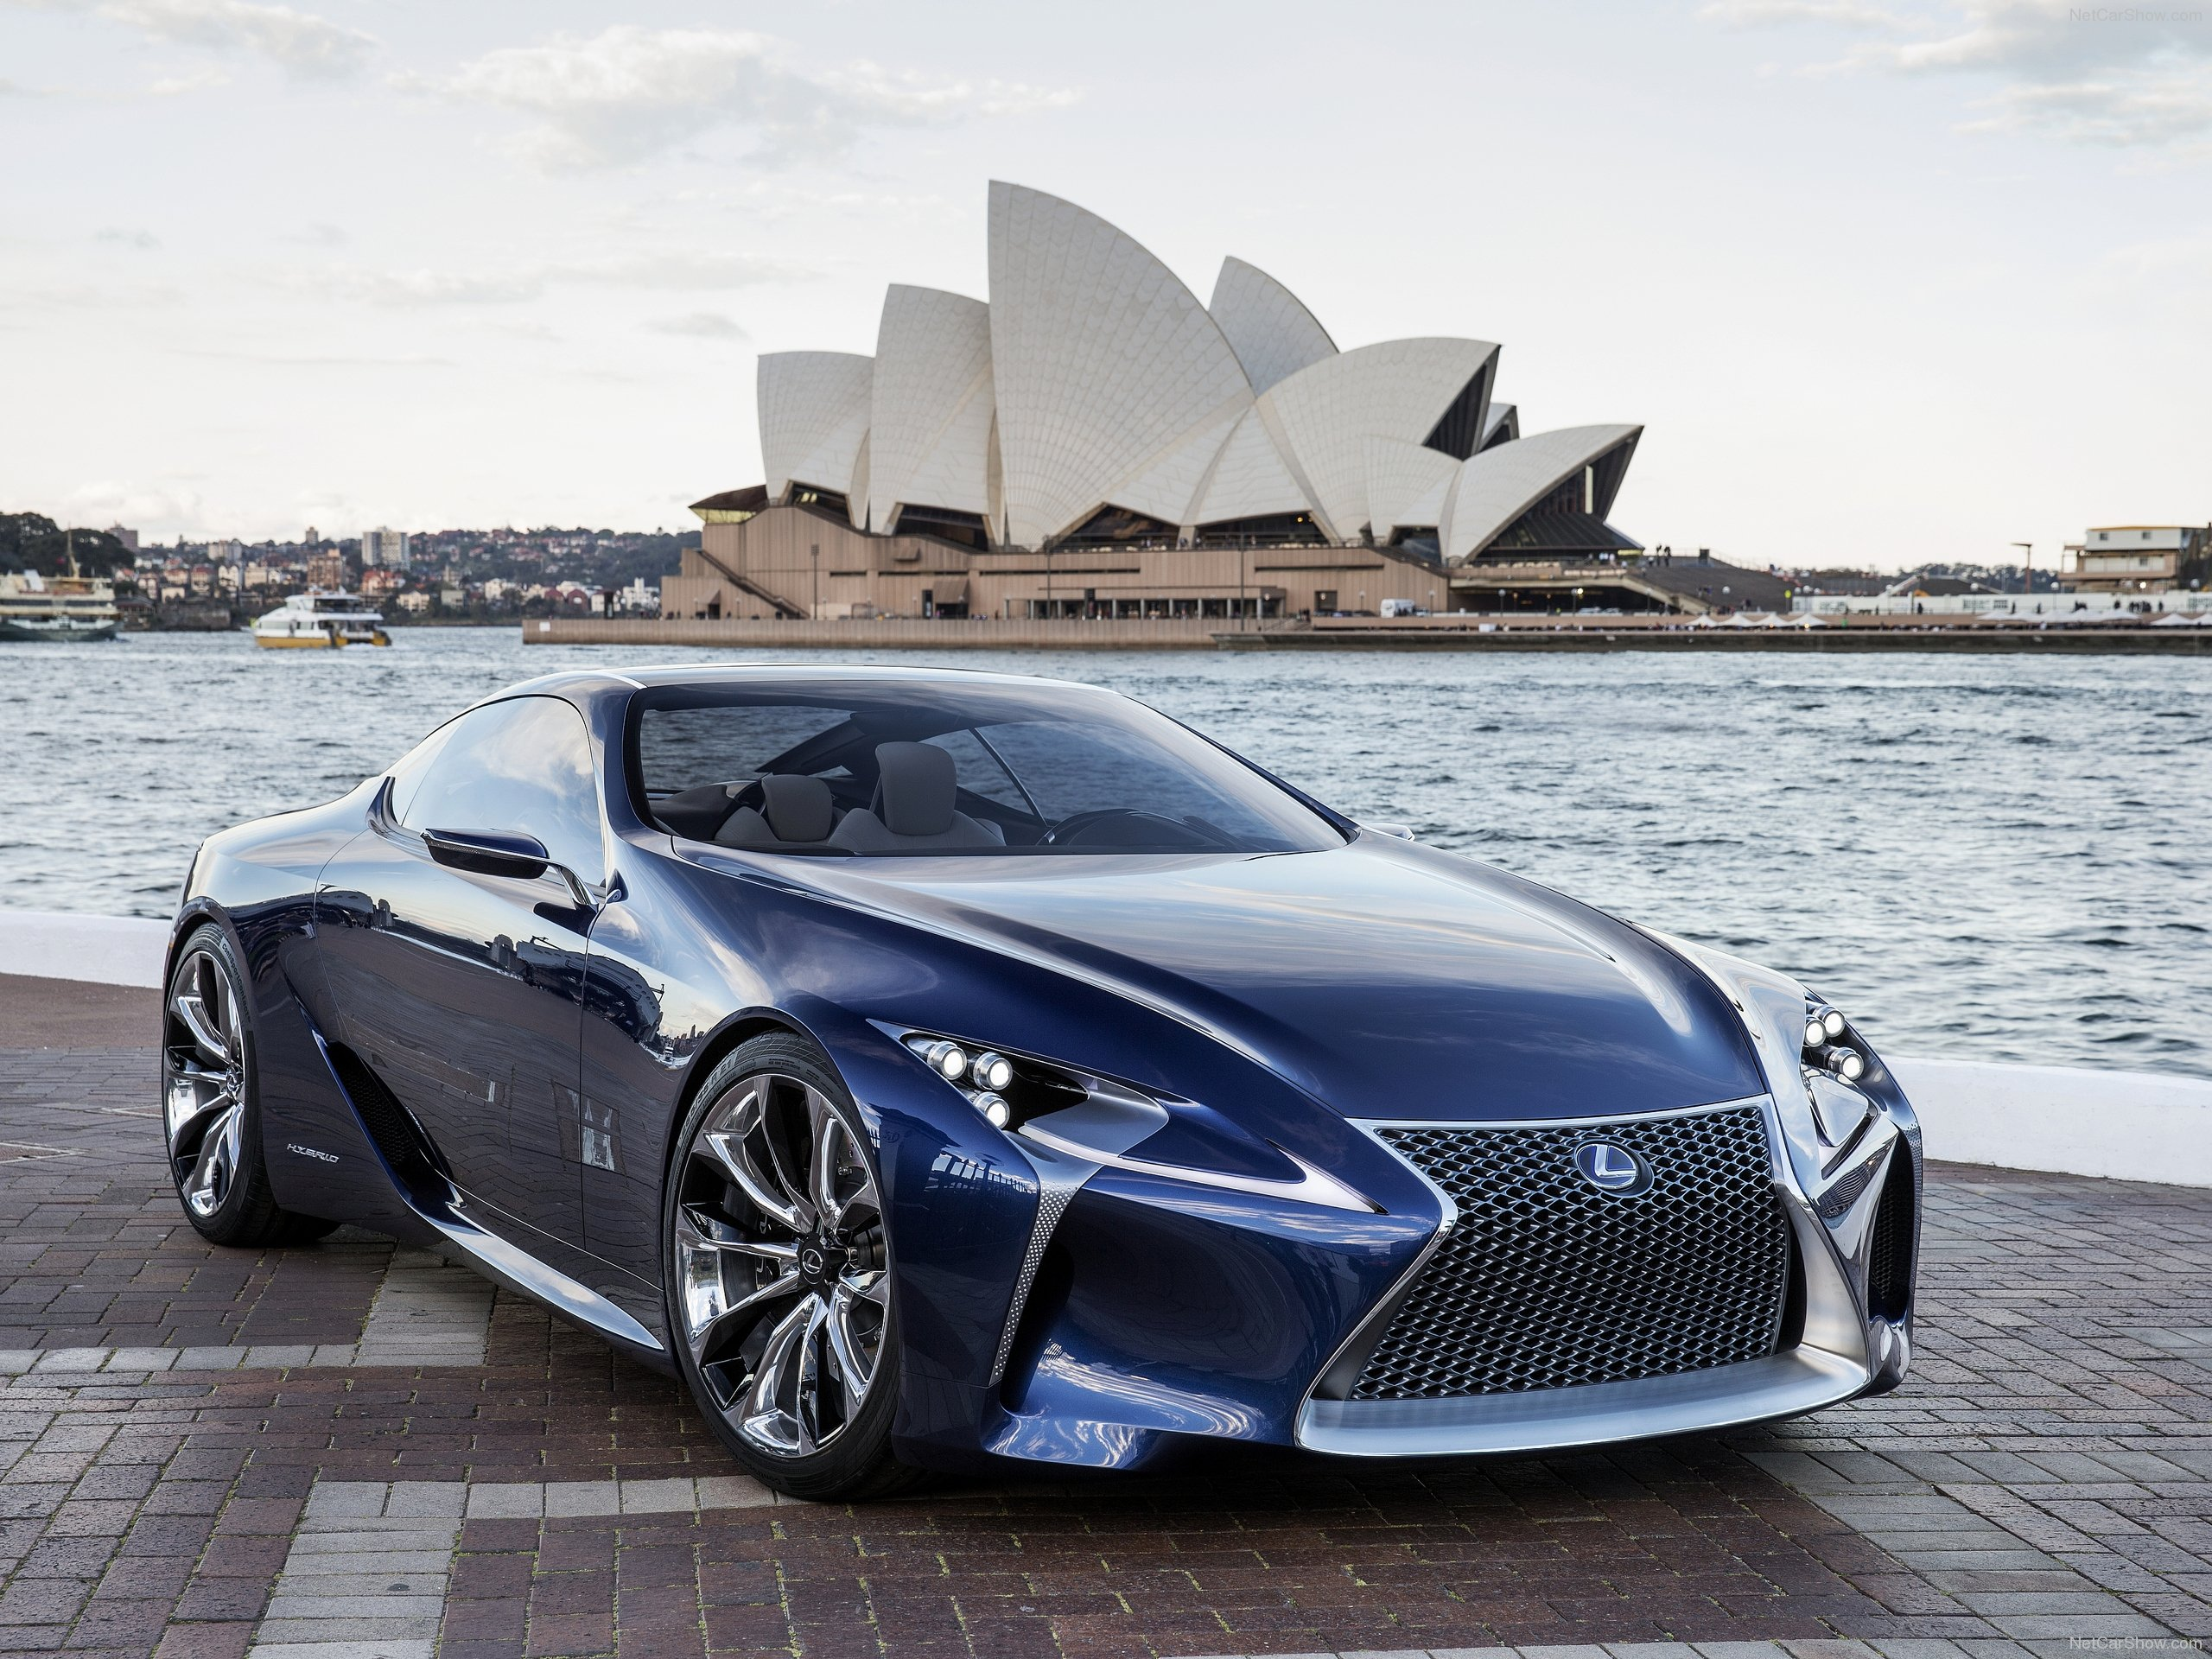 Blue Lexus in Sydney 588.24 Kb